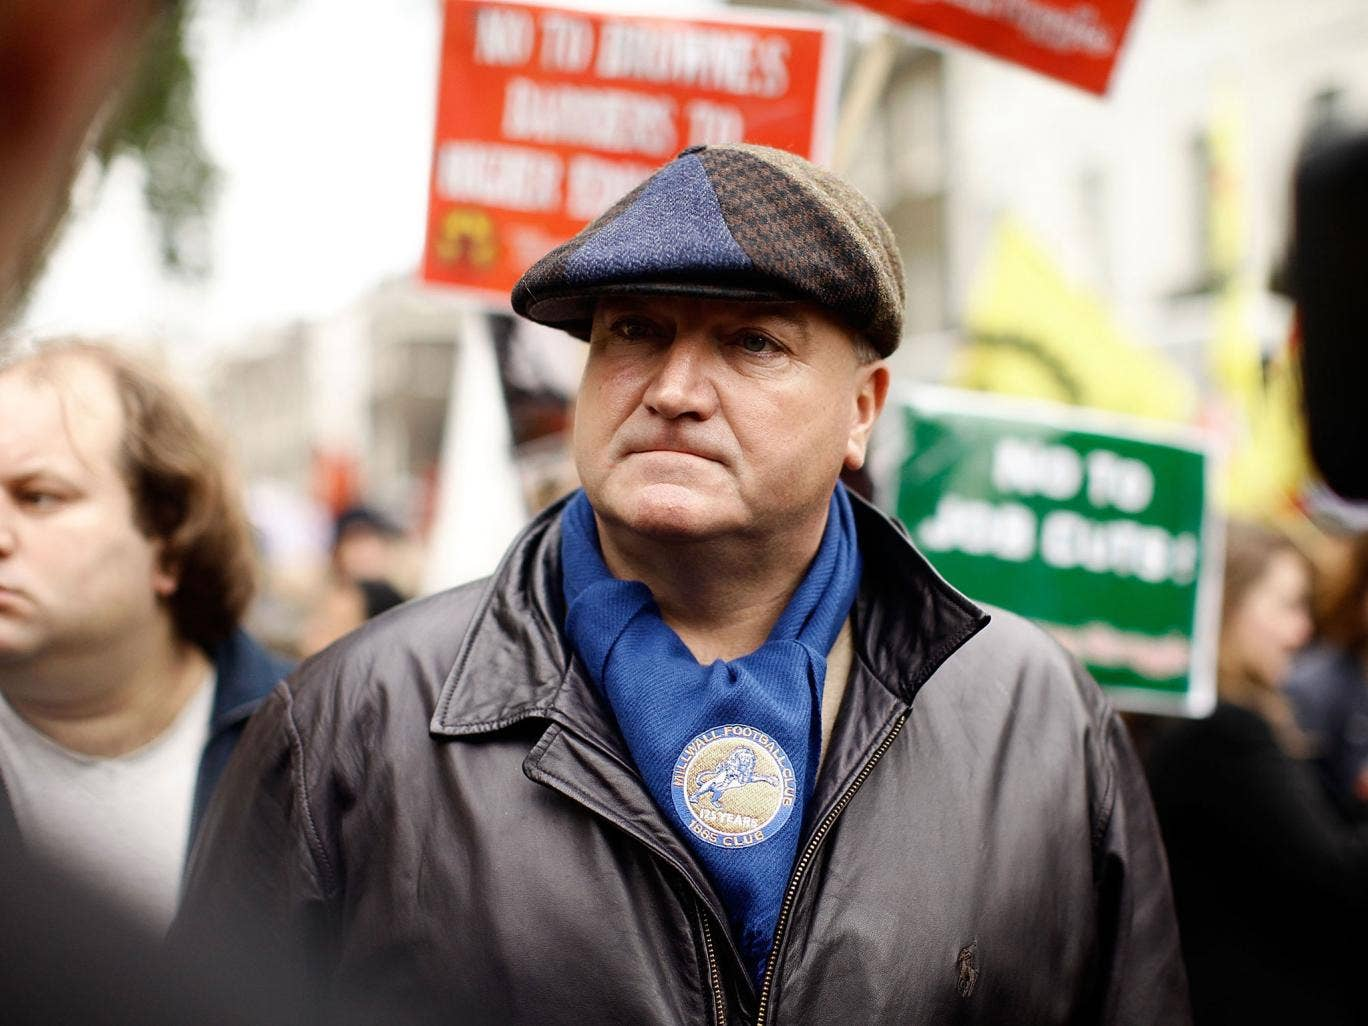 Bob Crow, General Secretary of the RMT union, attends with other activists and demonstrators a rally at Bedford Square to protest against government spending cuts in central London